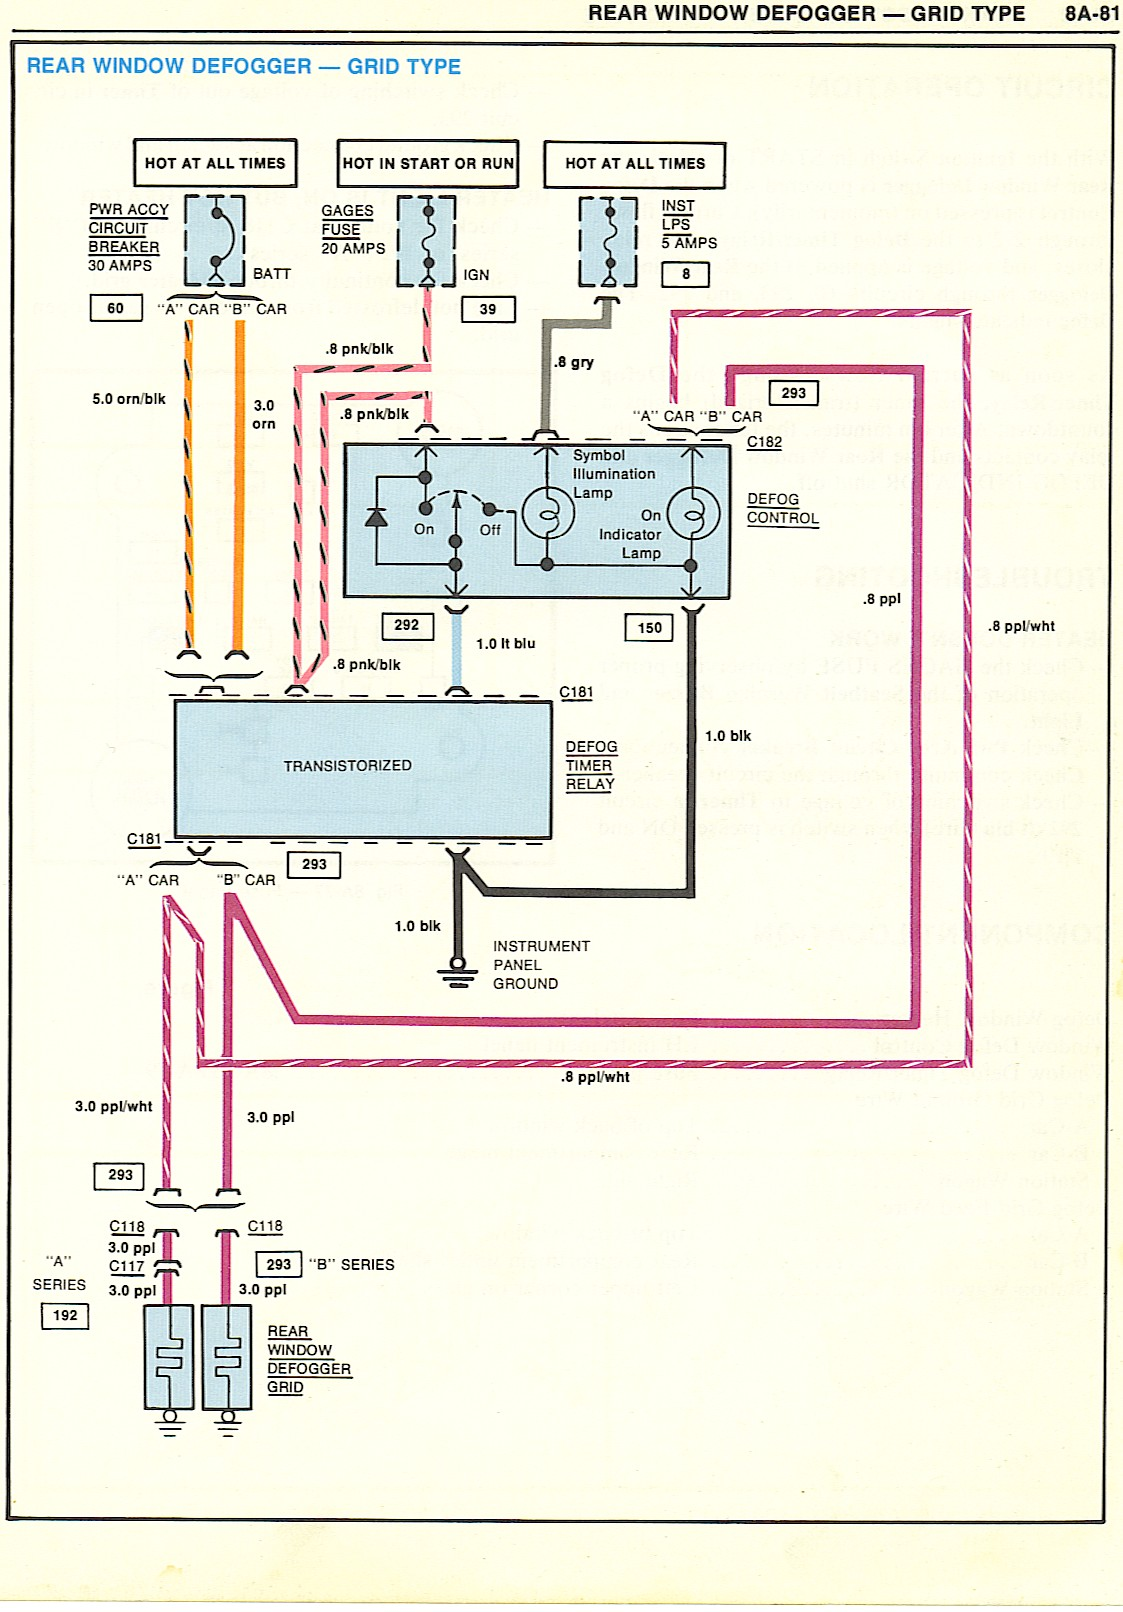 Electric Rear Window Defroster Wiring Diagram - Single Schematic Switch  Wiring smart-451.au-delice-limousin.fr | Rear Defrost Wiring Diagram |  | Bege Place Wiring Diagram